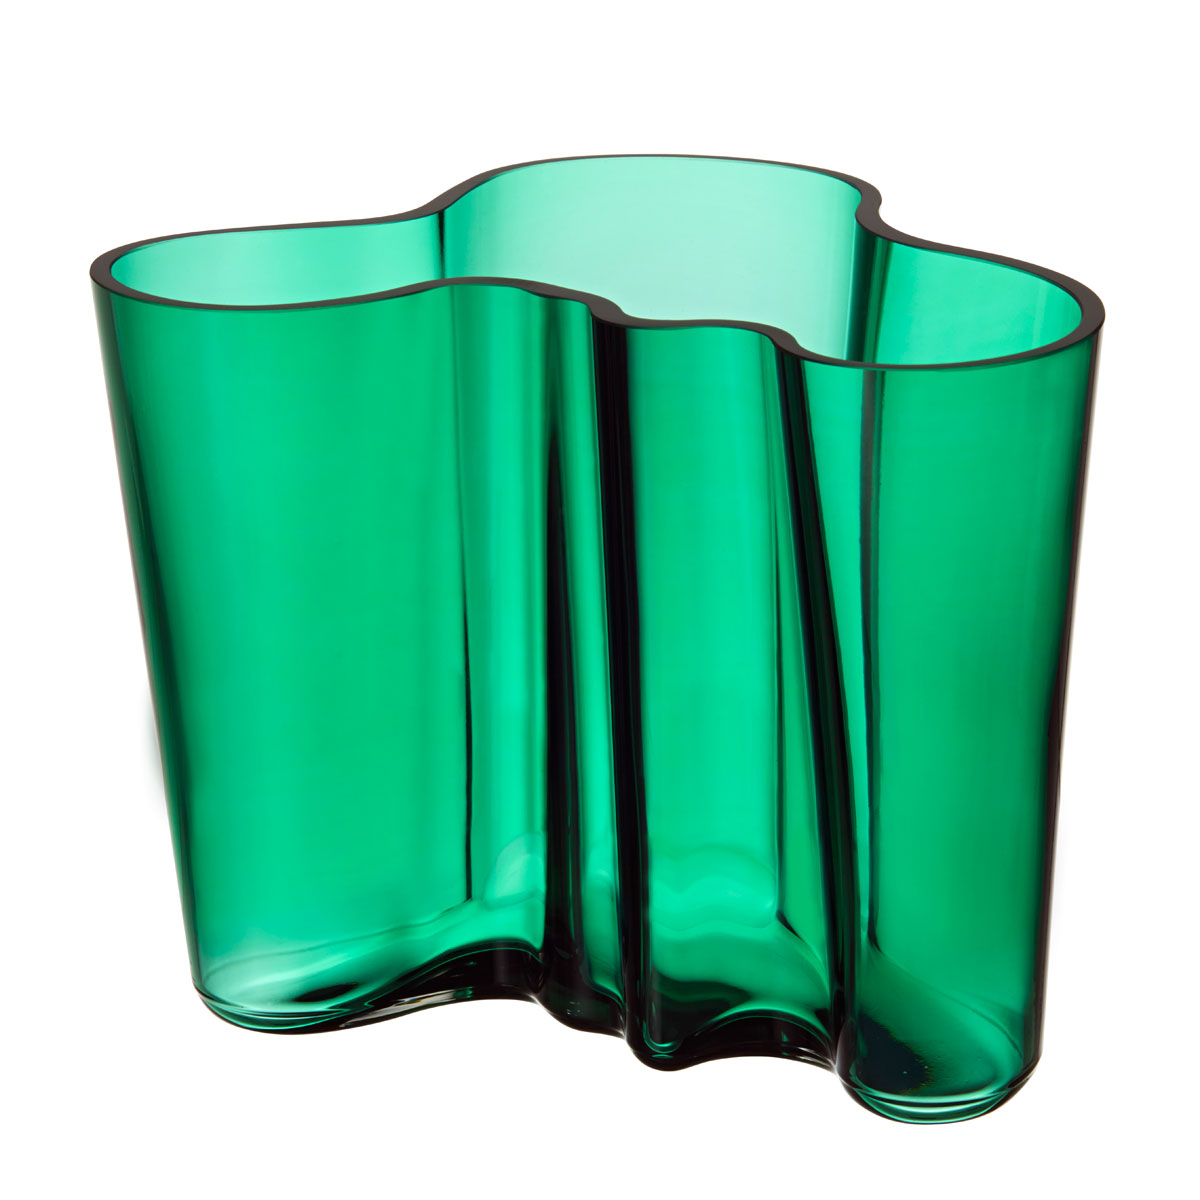 iittala aalto emerald vase 6 1 4 iittala alvar aalto vases. Black Bedroom Furniture Sets. Home Design Ideas